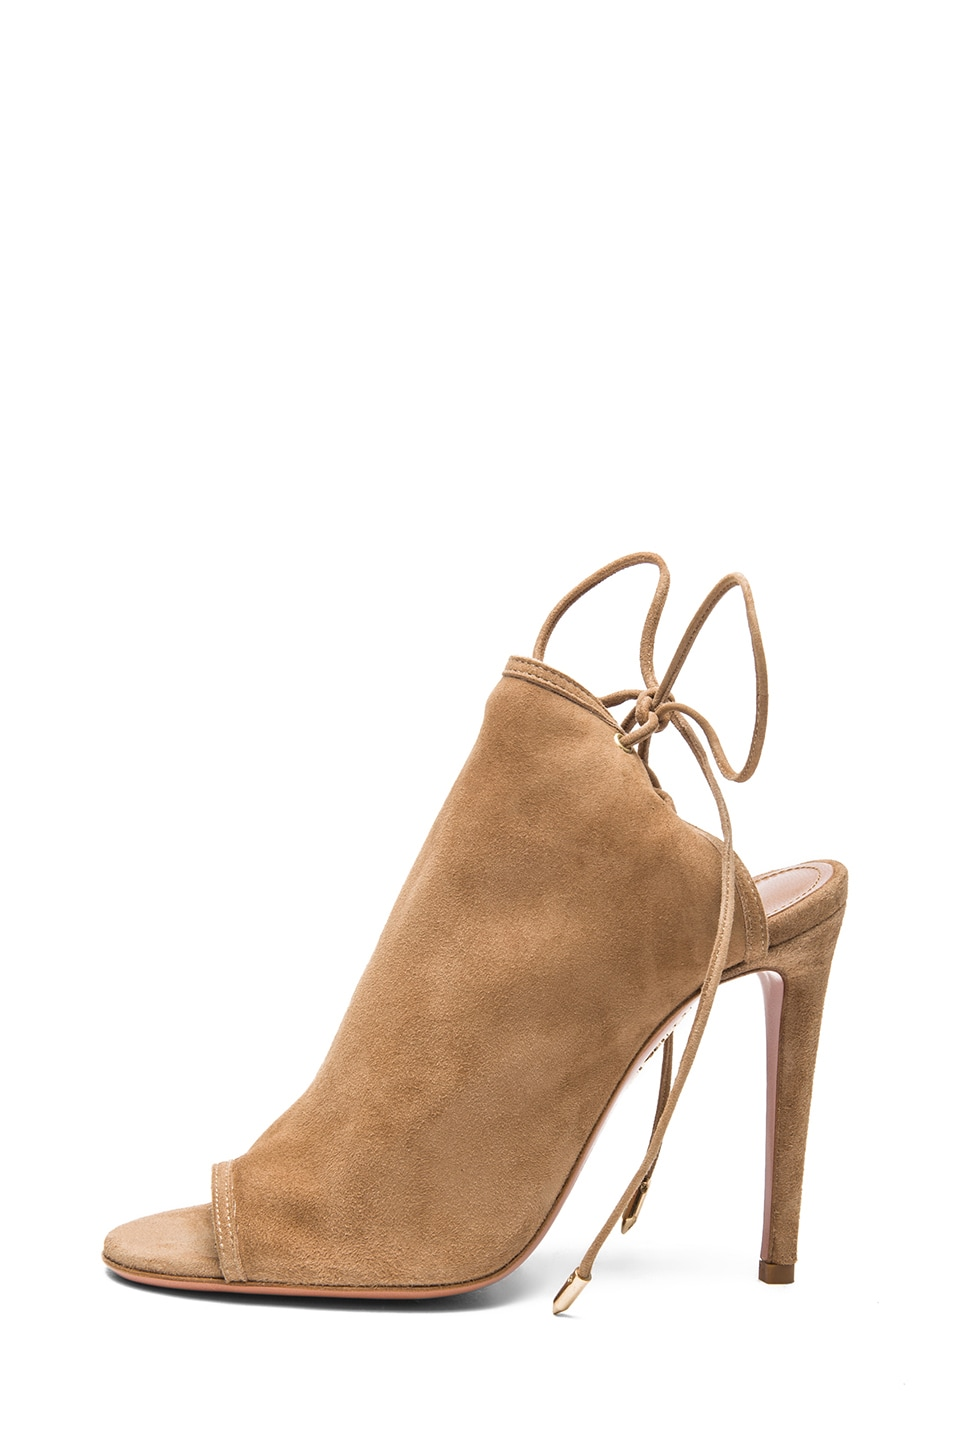 Image 1 of Aquazzura Mayfair Suede Sandals in Nude